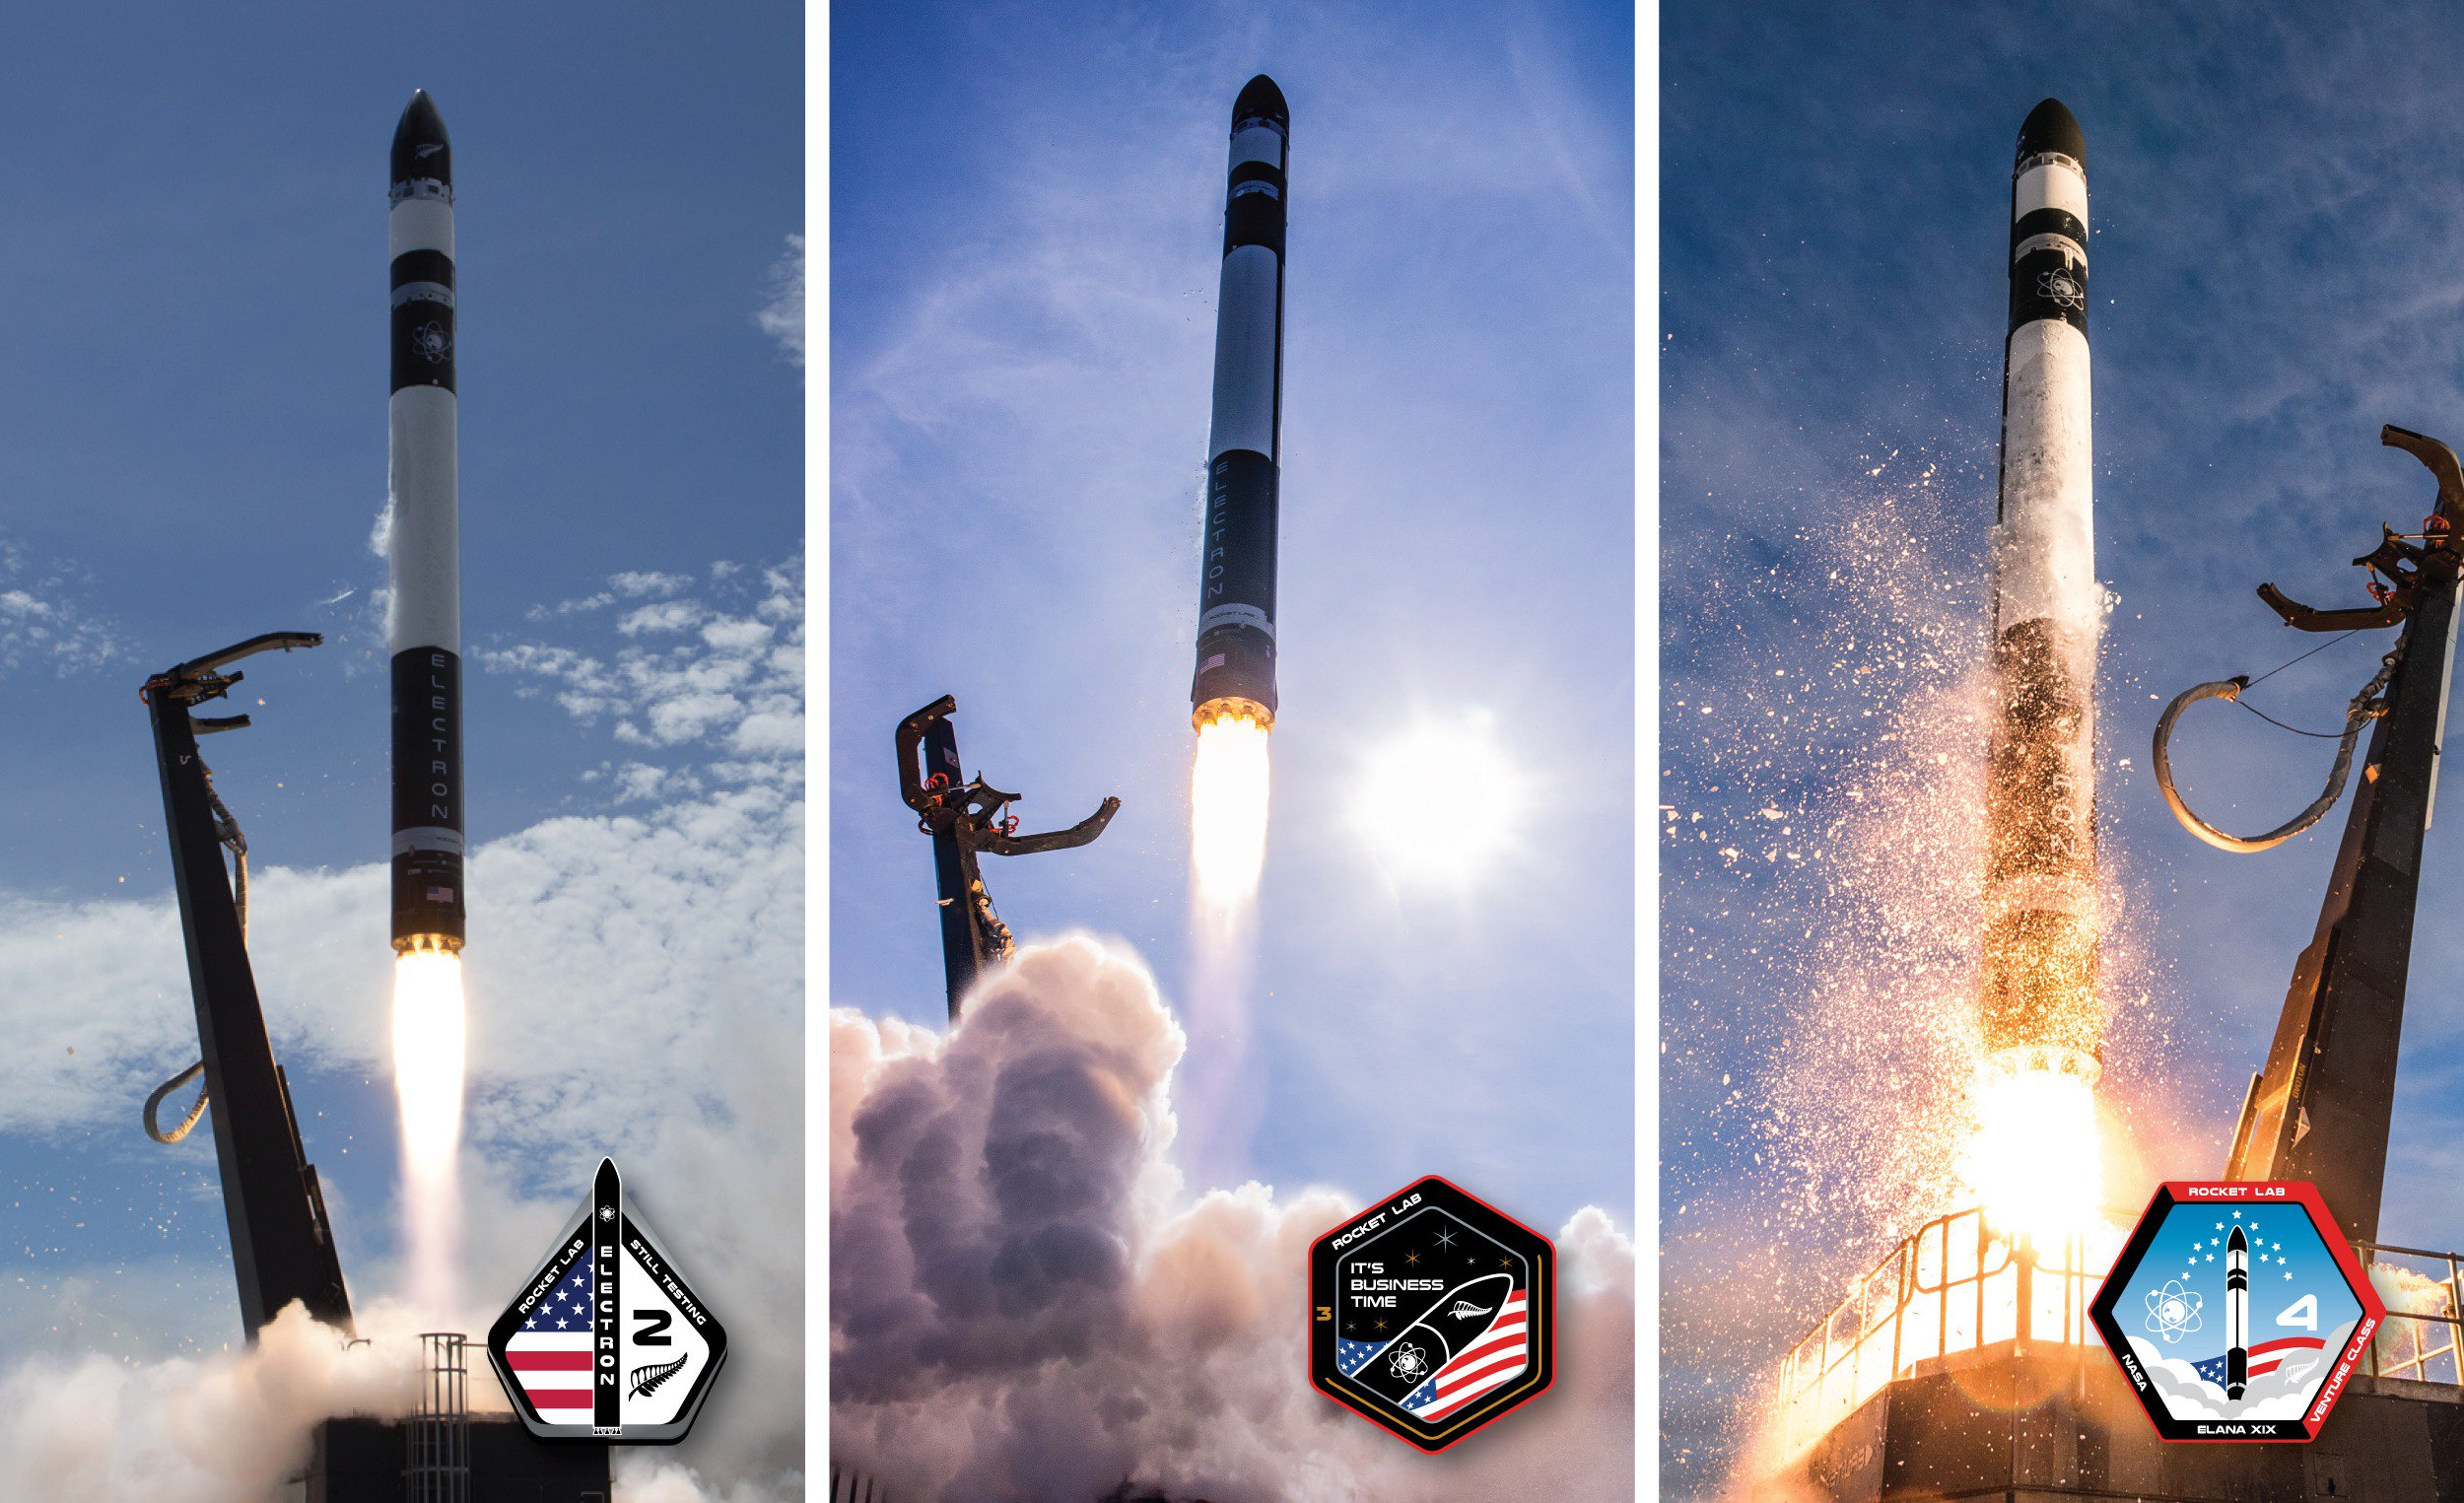 Electron orbital launch successes (Rocket Lab)